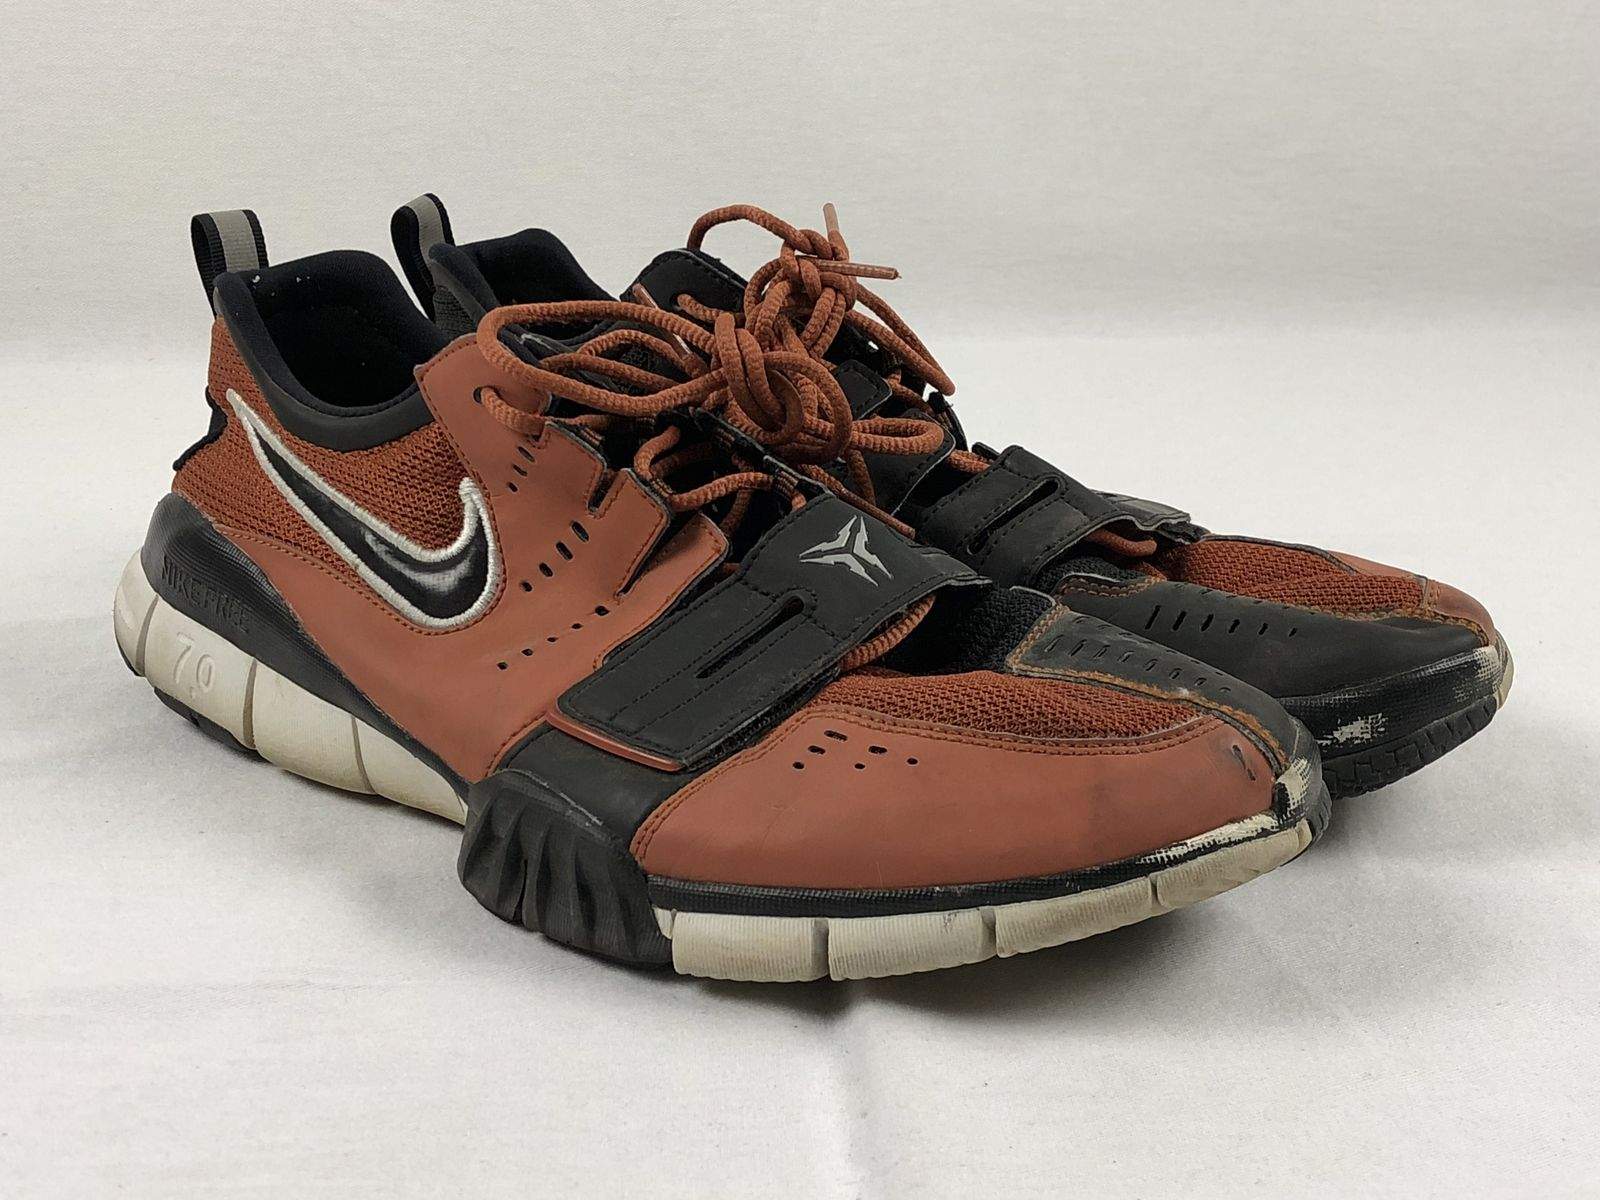 Details about Nike Free 7.0 - Orange Black Running a362f2e5f